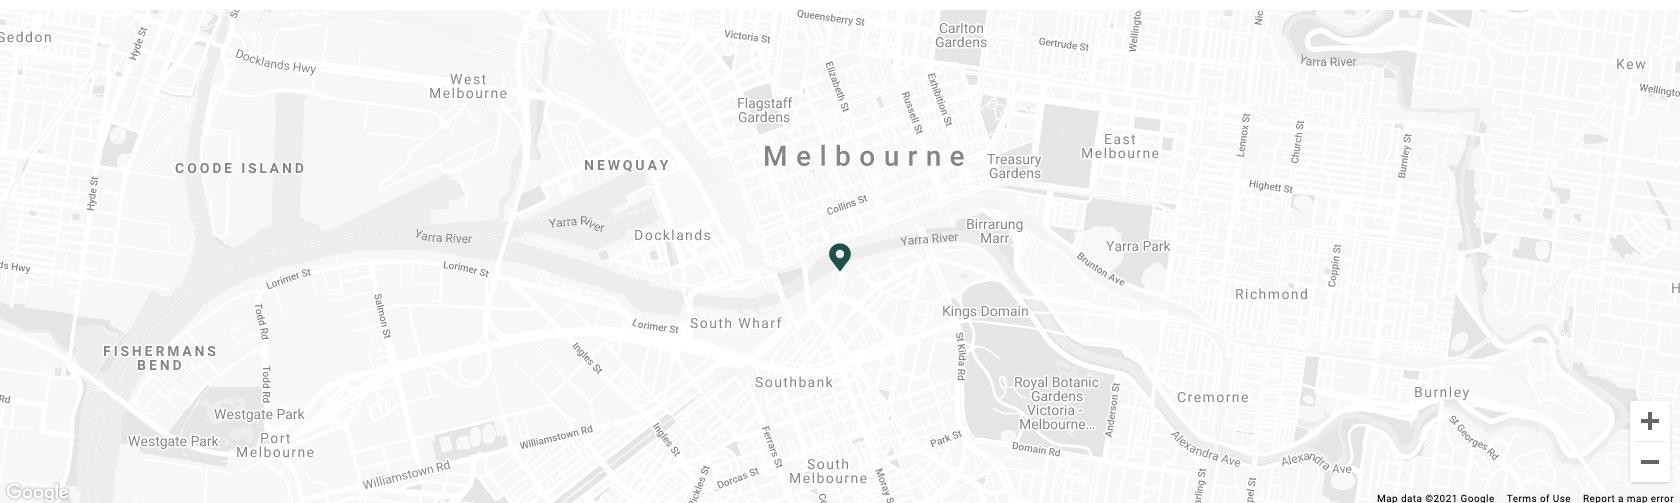 Map image of Crown Towers Melbourne